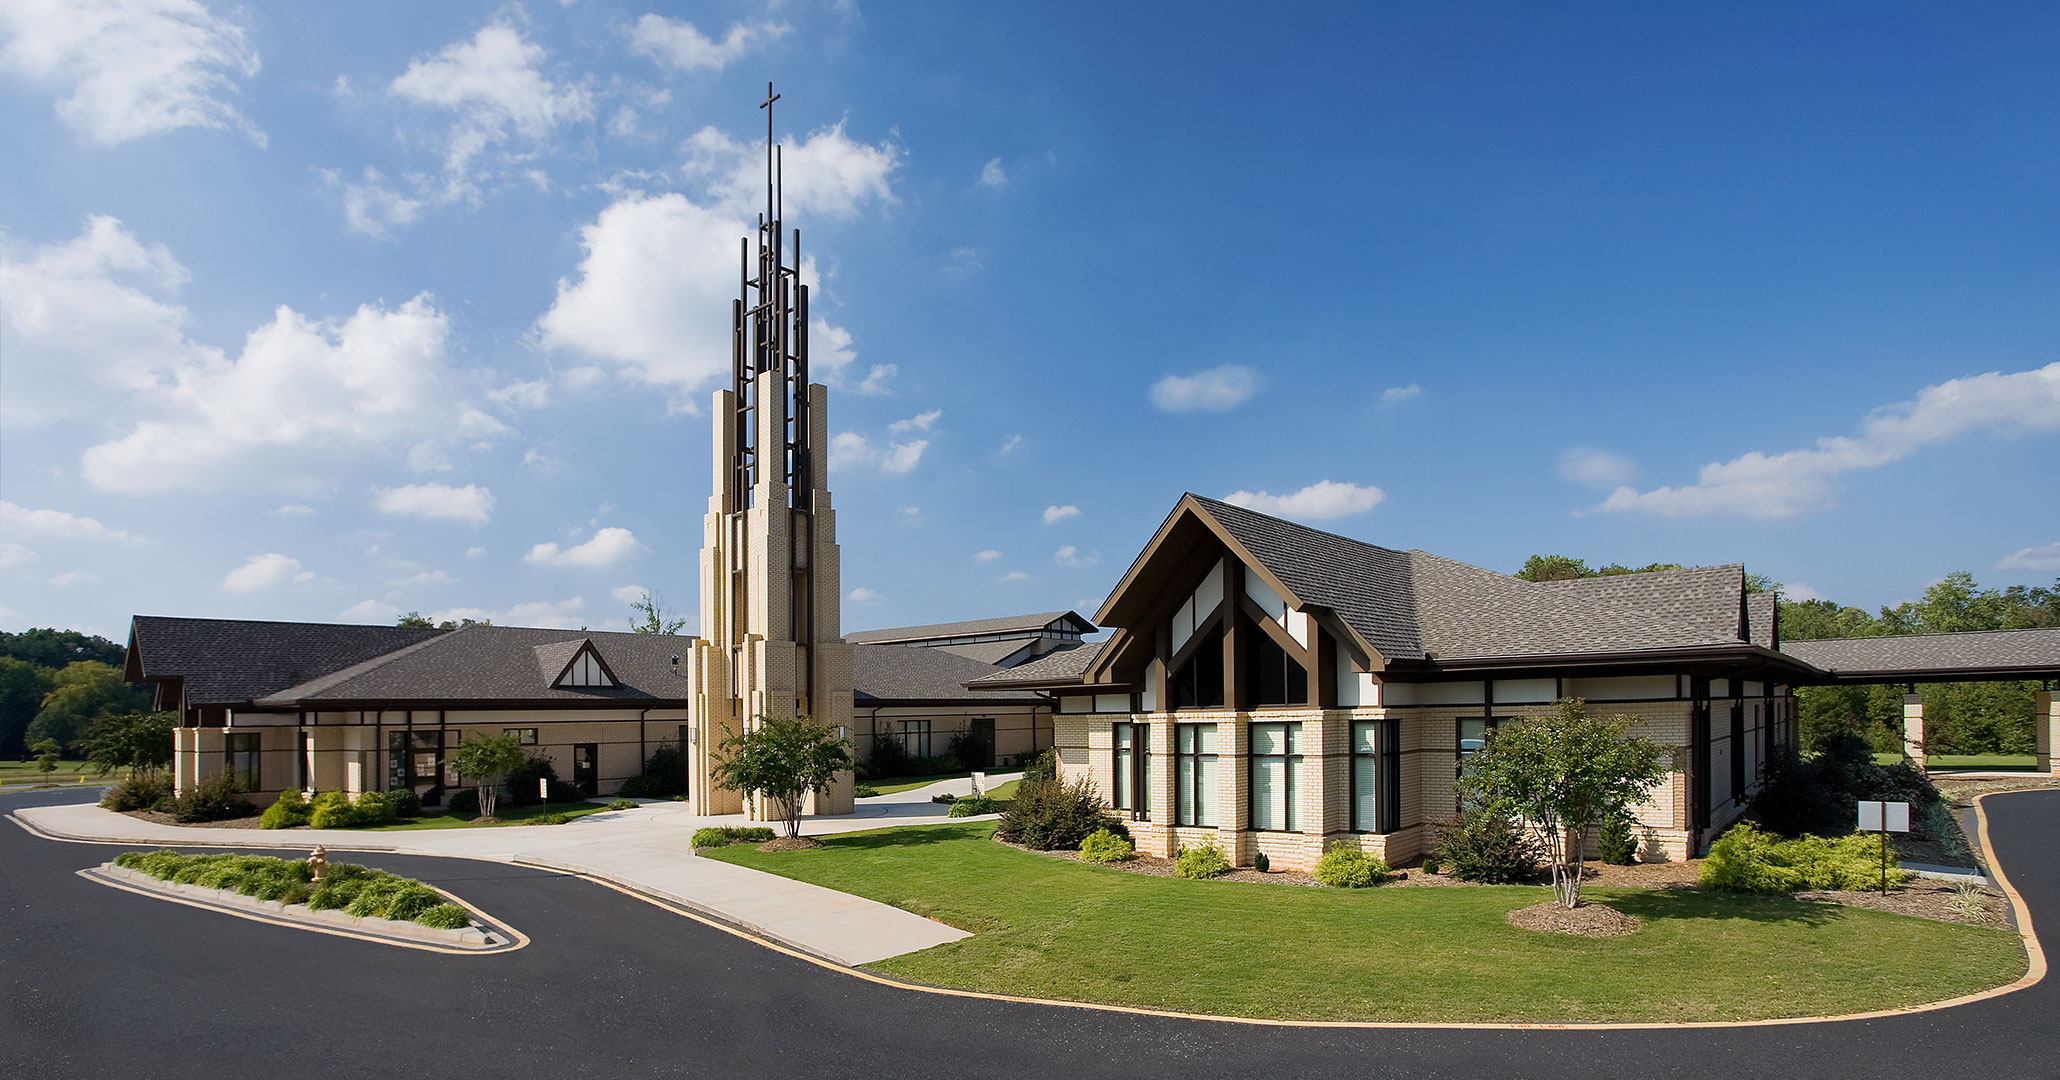 Boudreaux architects worked with the Clemson United Methodist Church to provide master planning services for their campus.